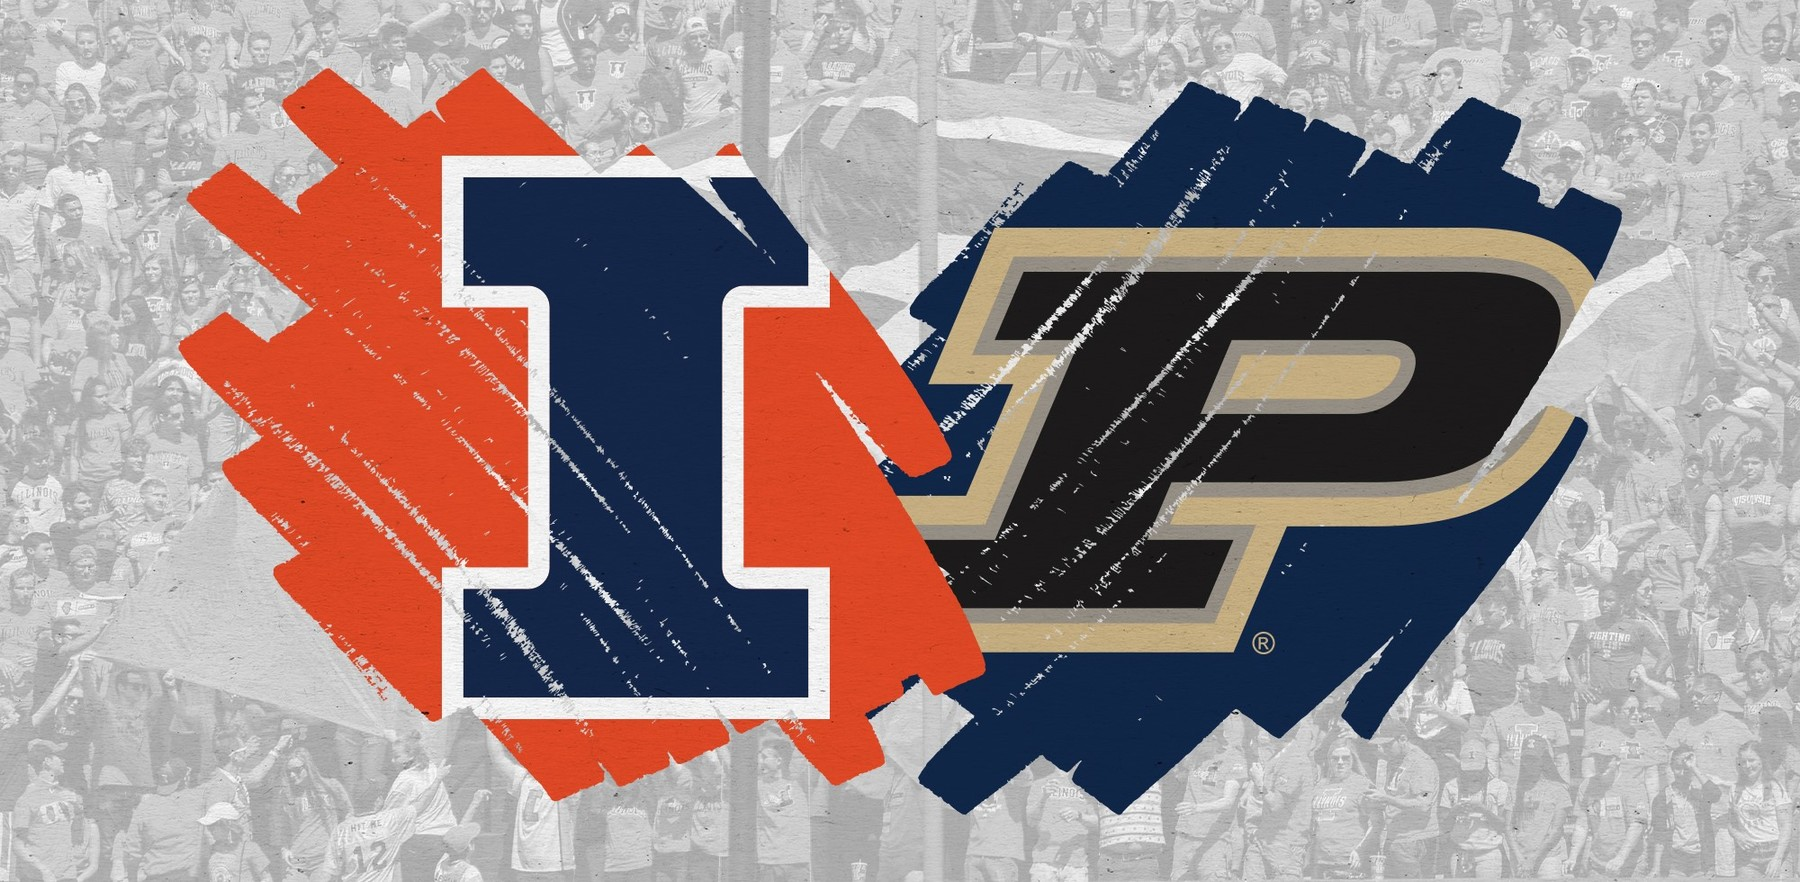 graphic using the Illinois and Purdue athletic logos